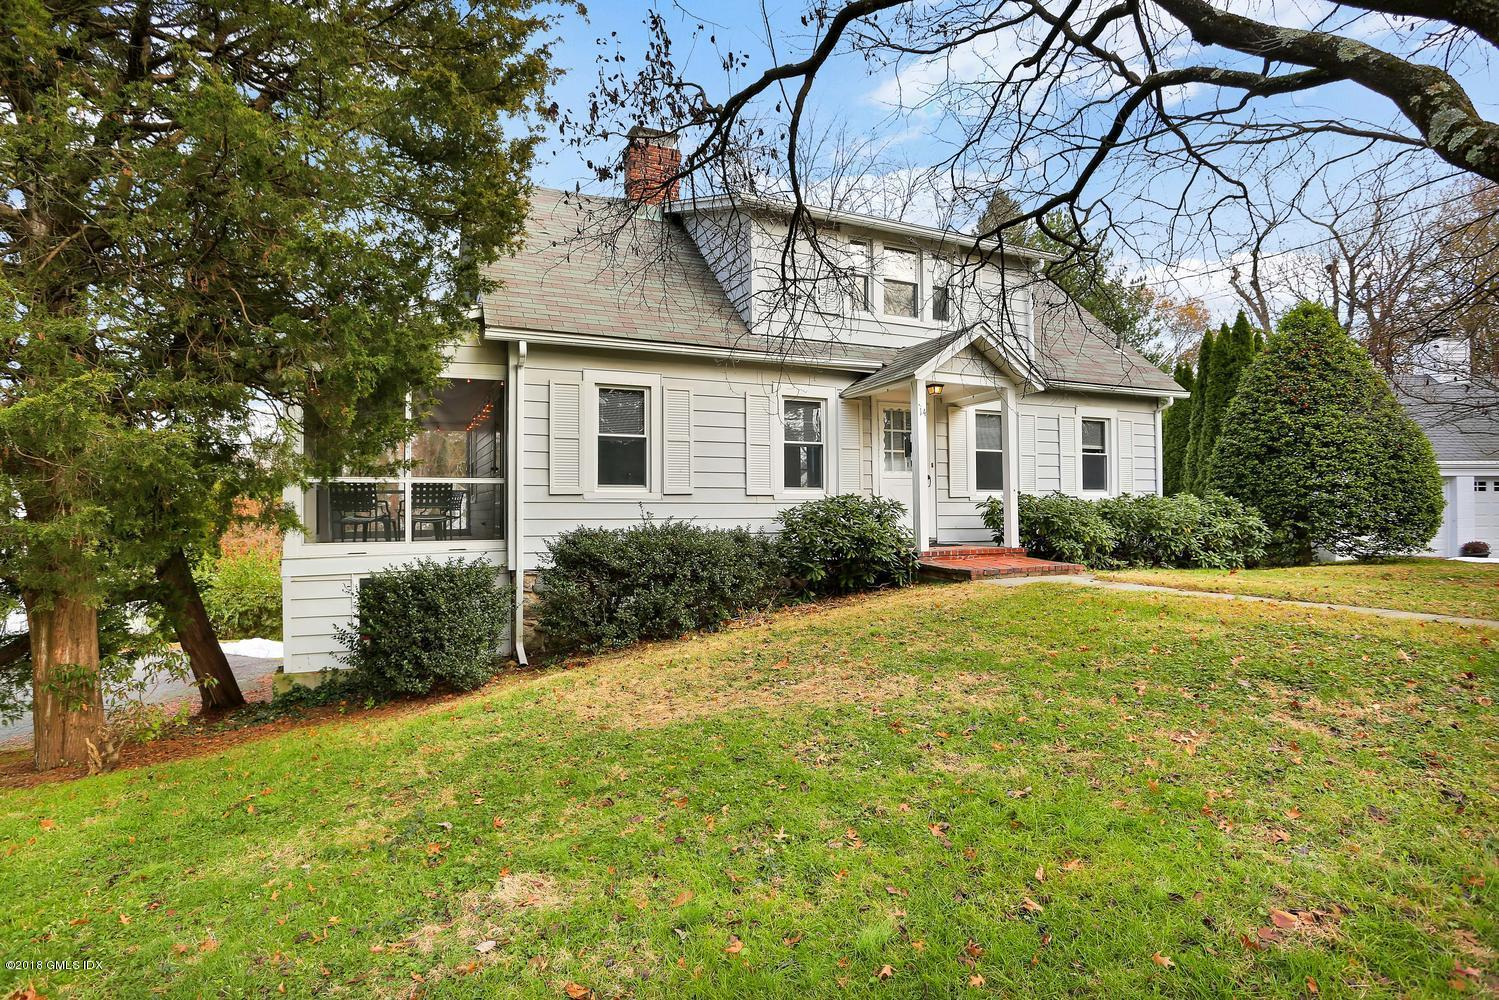 14 Indian Pass,Greenwich,Connecticut 06830,3 Bedrooms Bedrooms,1 BathroomBathrooms,Single family,Indian,104995